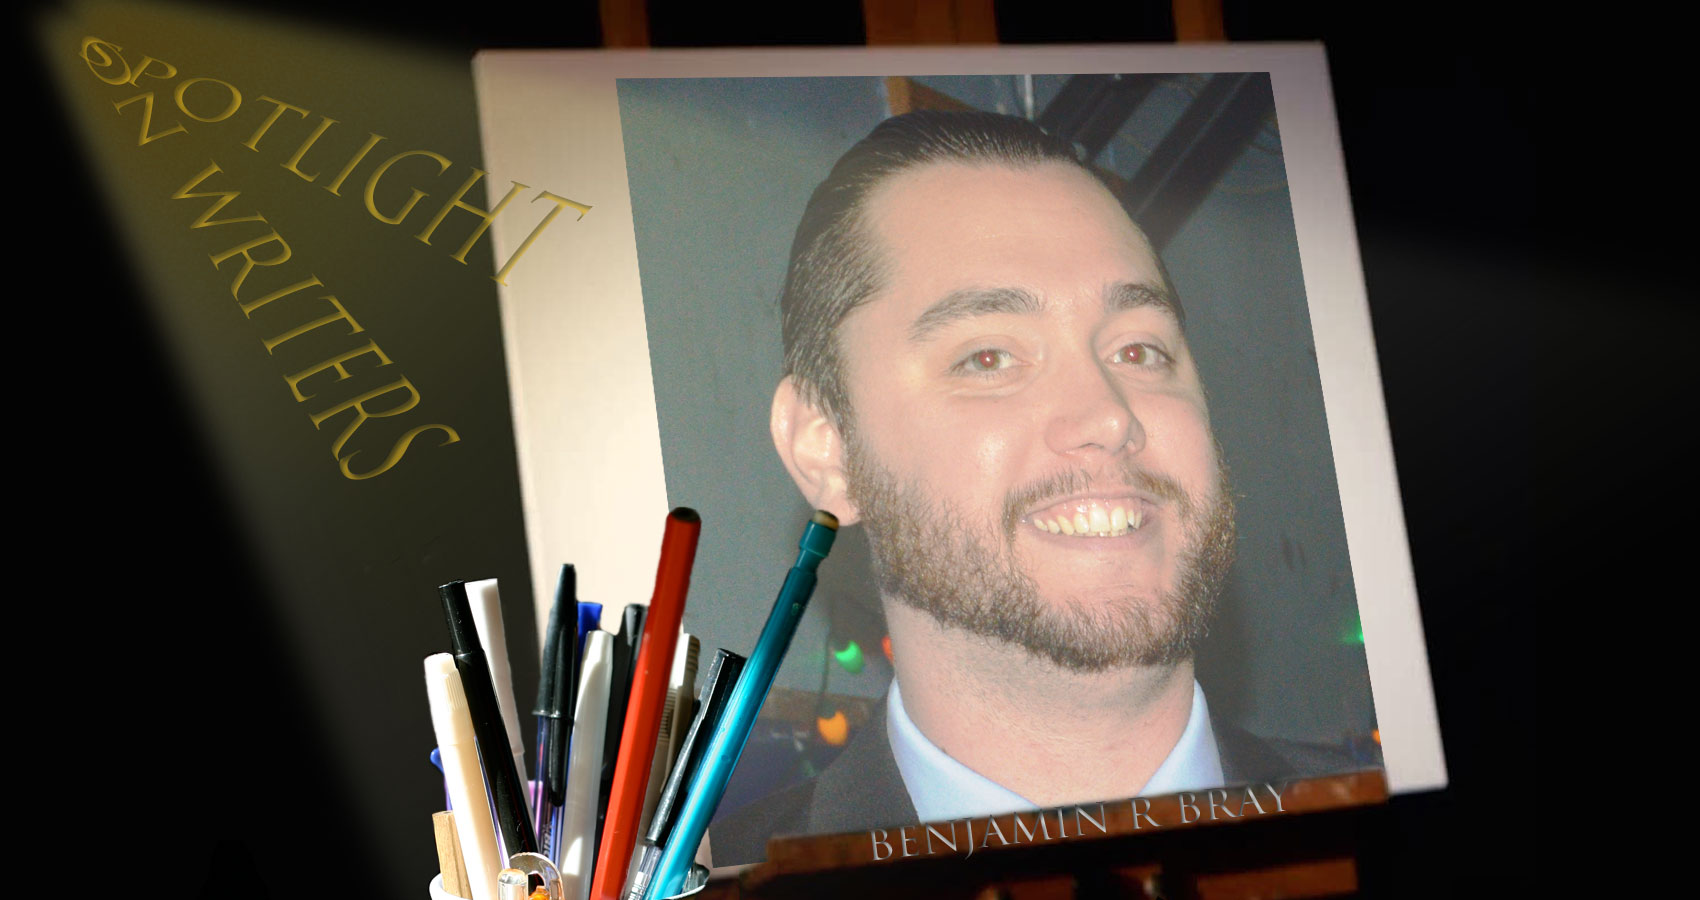 Spotlight On Writers - Benjamin R Bray at Spillwords.com